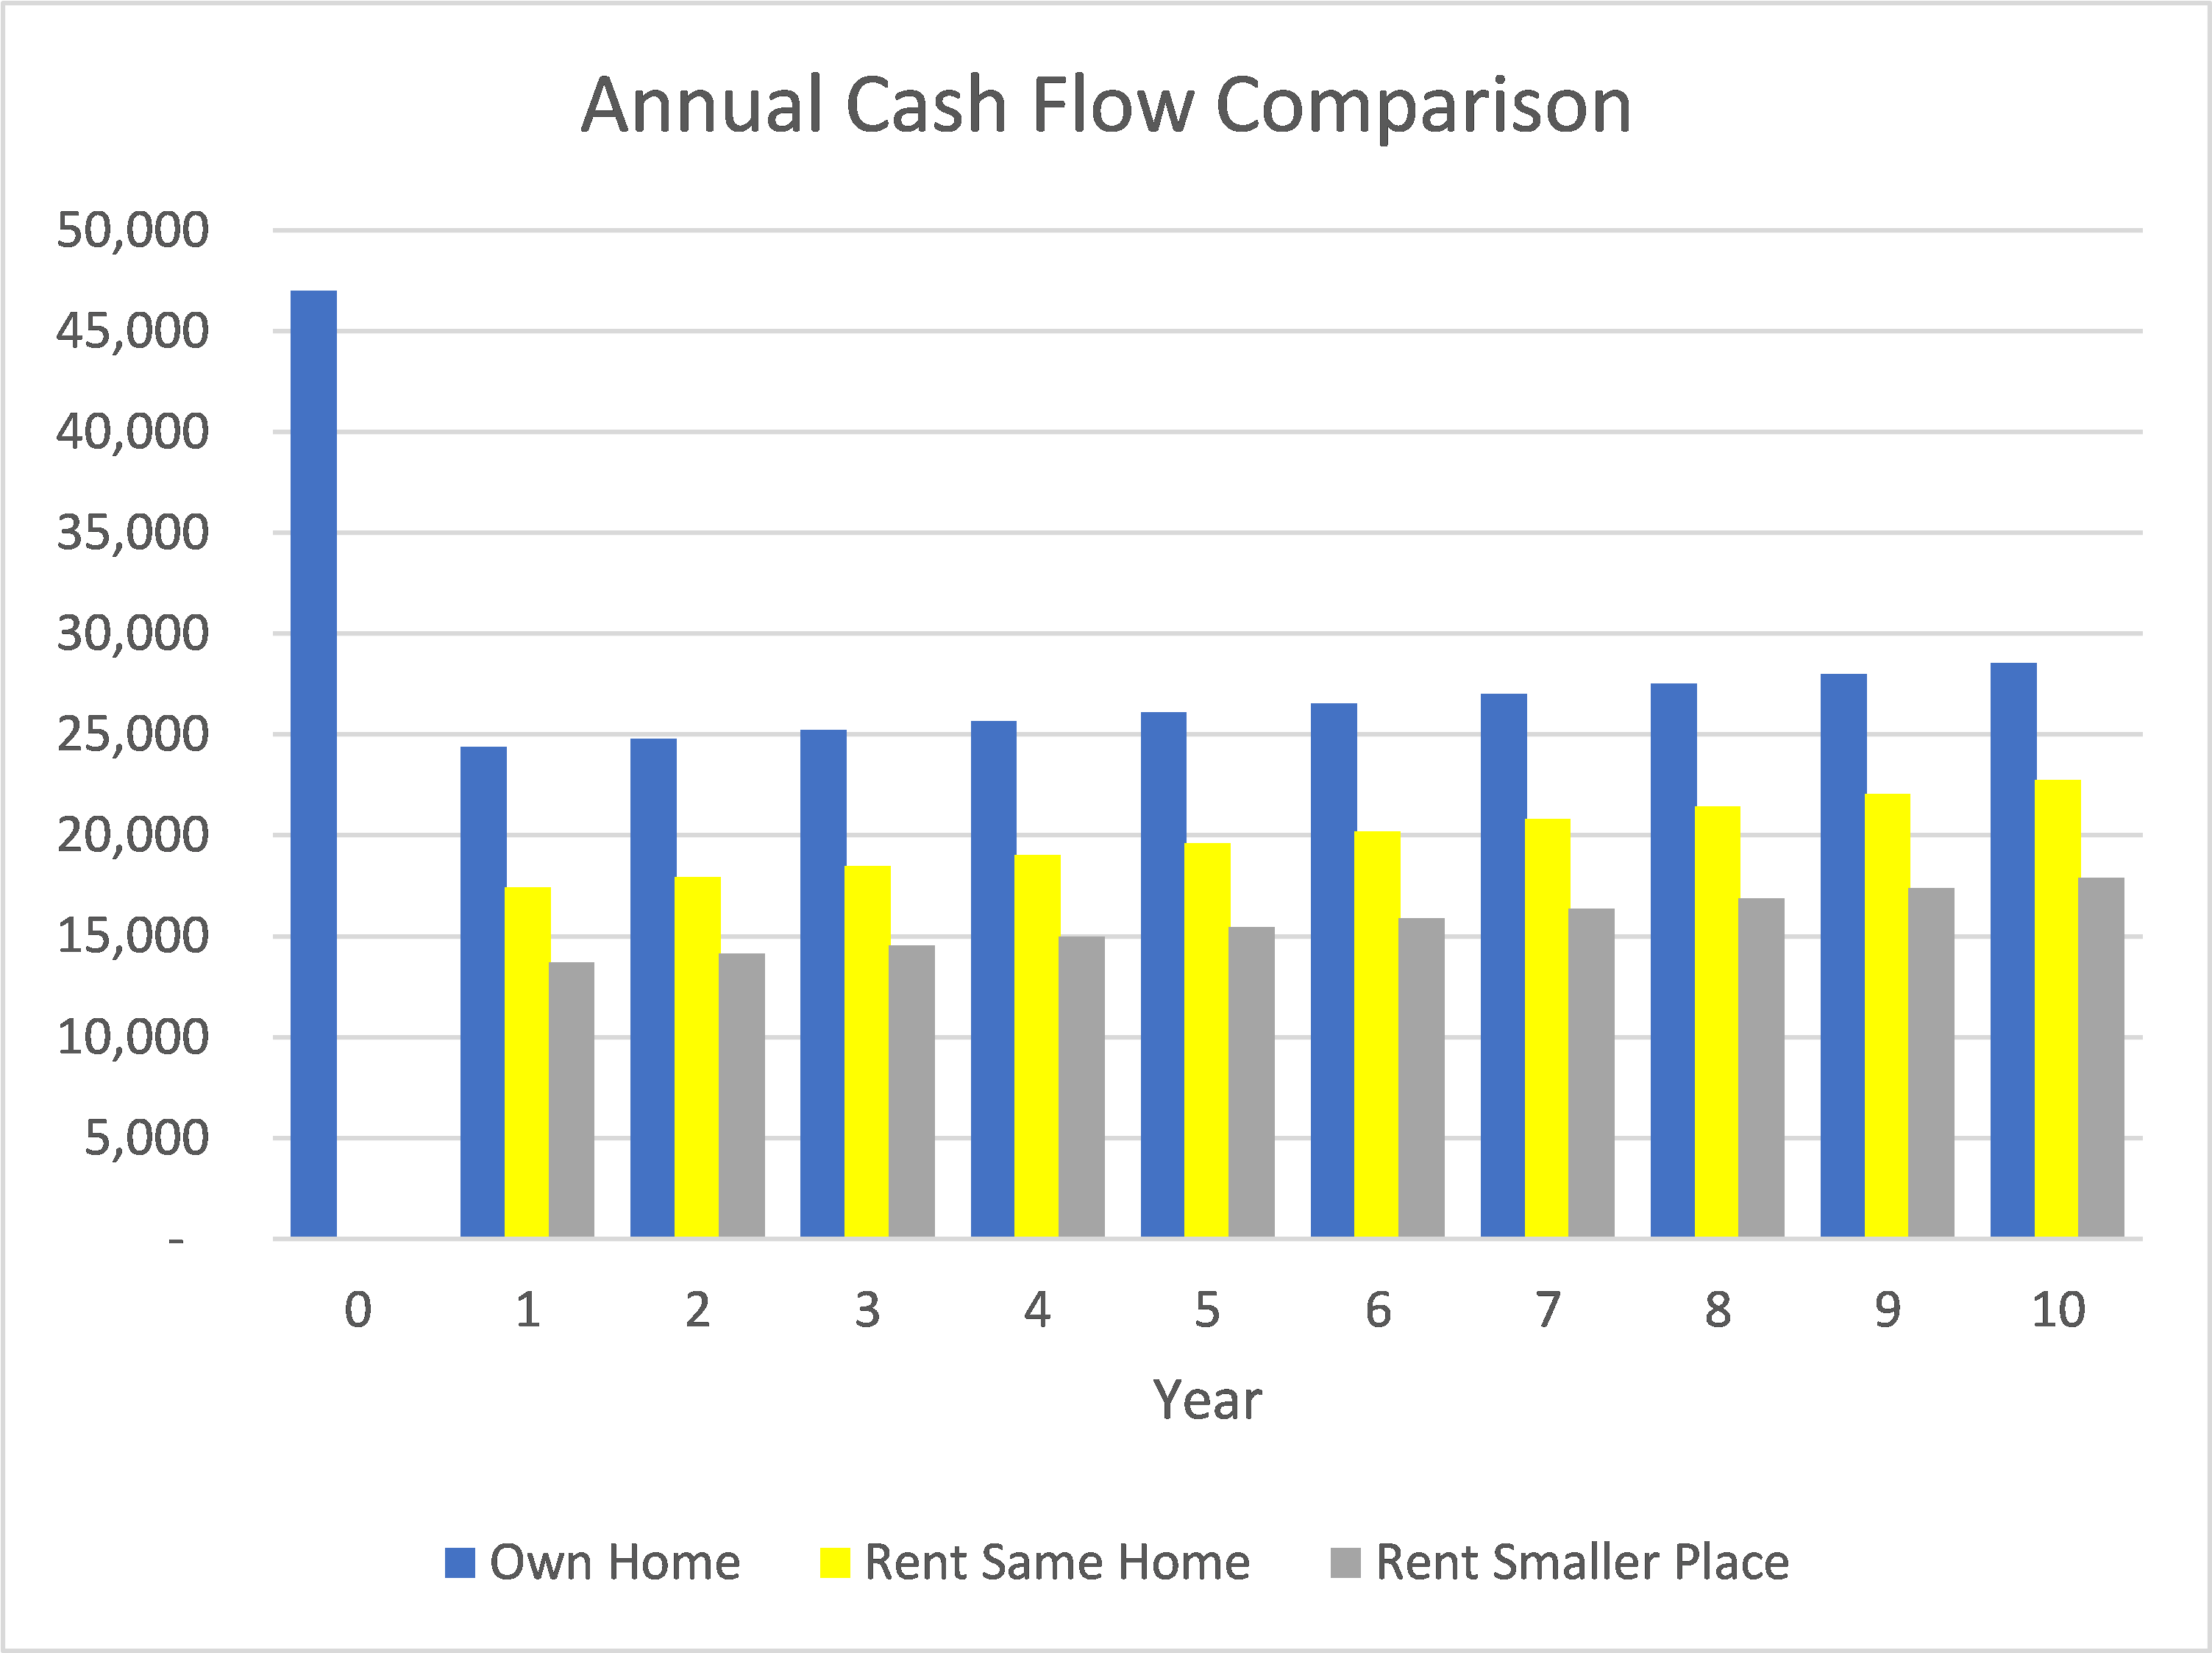 Buy vs Rent Cash Flow Comparison